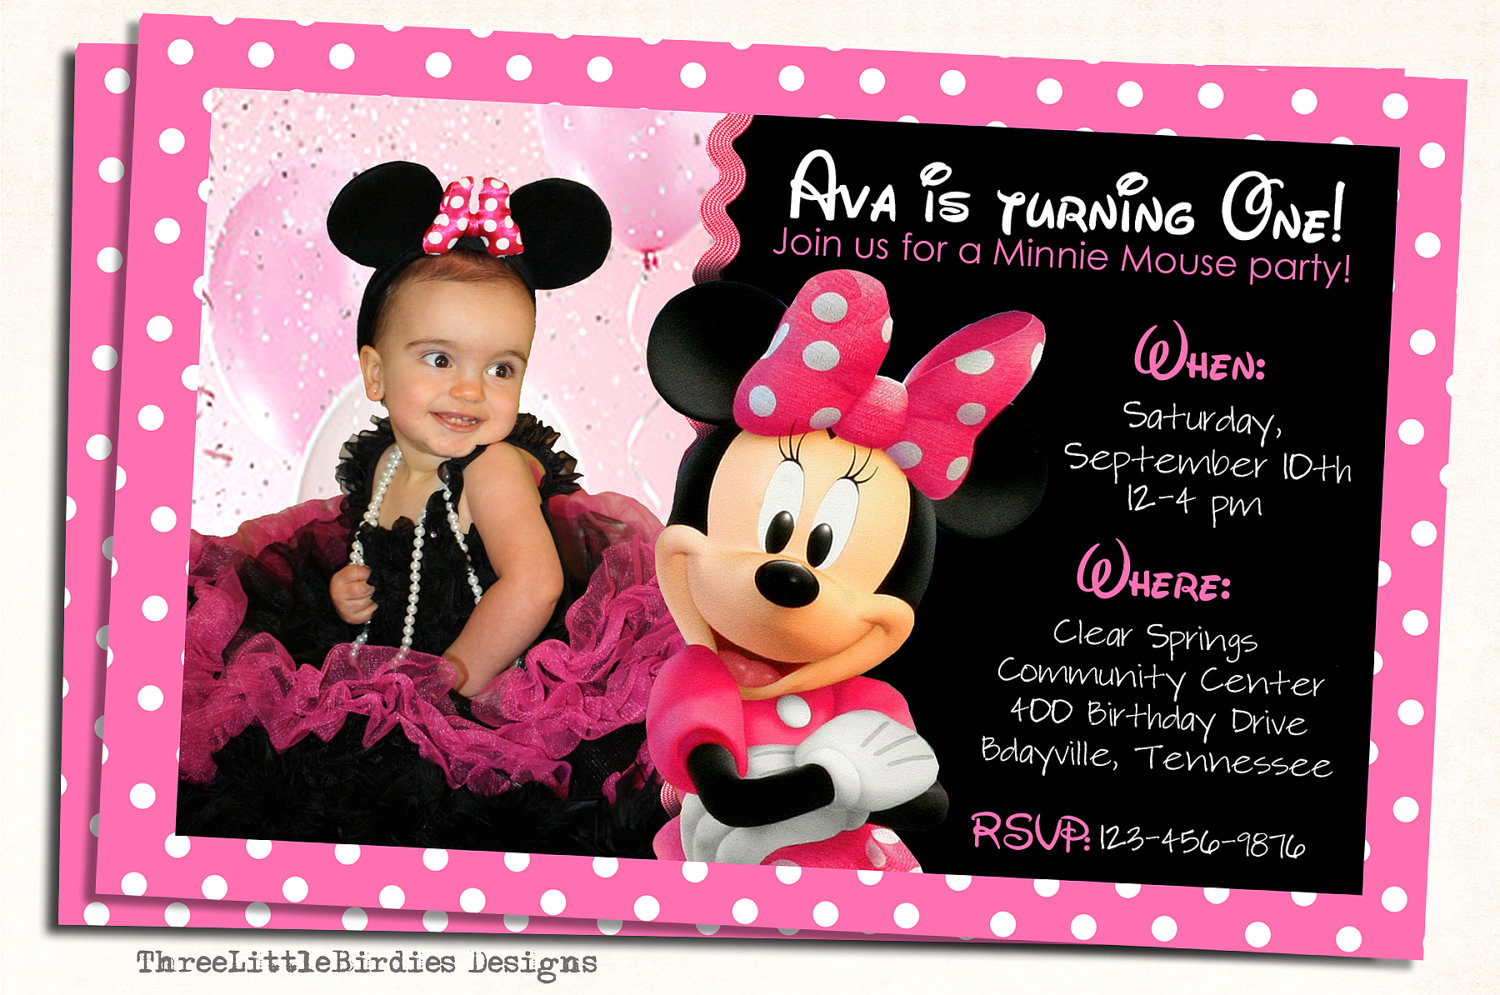 birthday invitation minnie mouse theme ; minnie-mouse-photo-birthday-invitations-to-inspire-you-how-to-make-the-Birthday-invitation-look-attractive-2